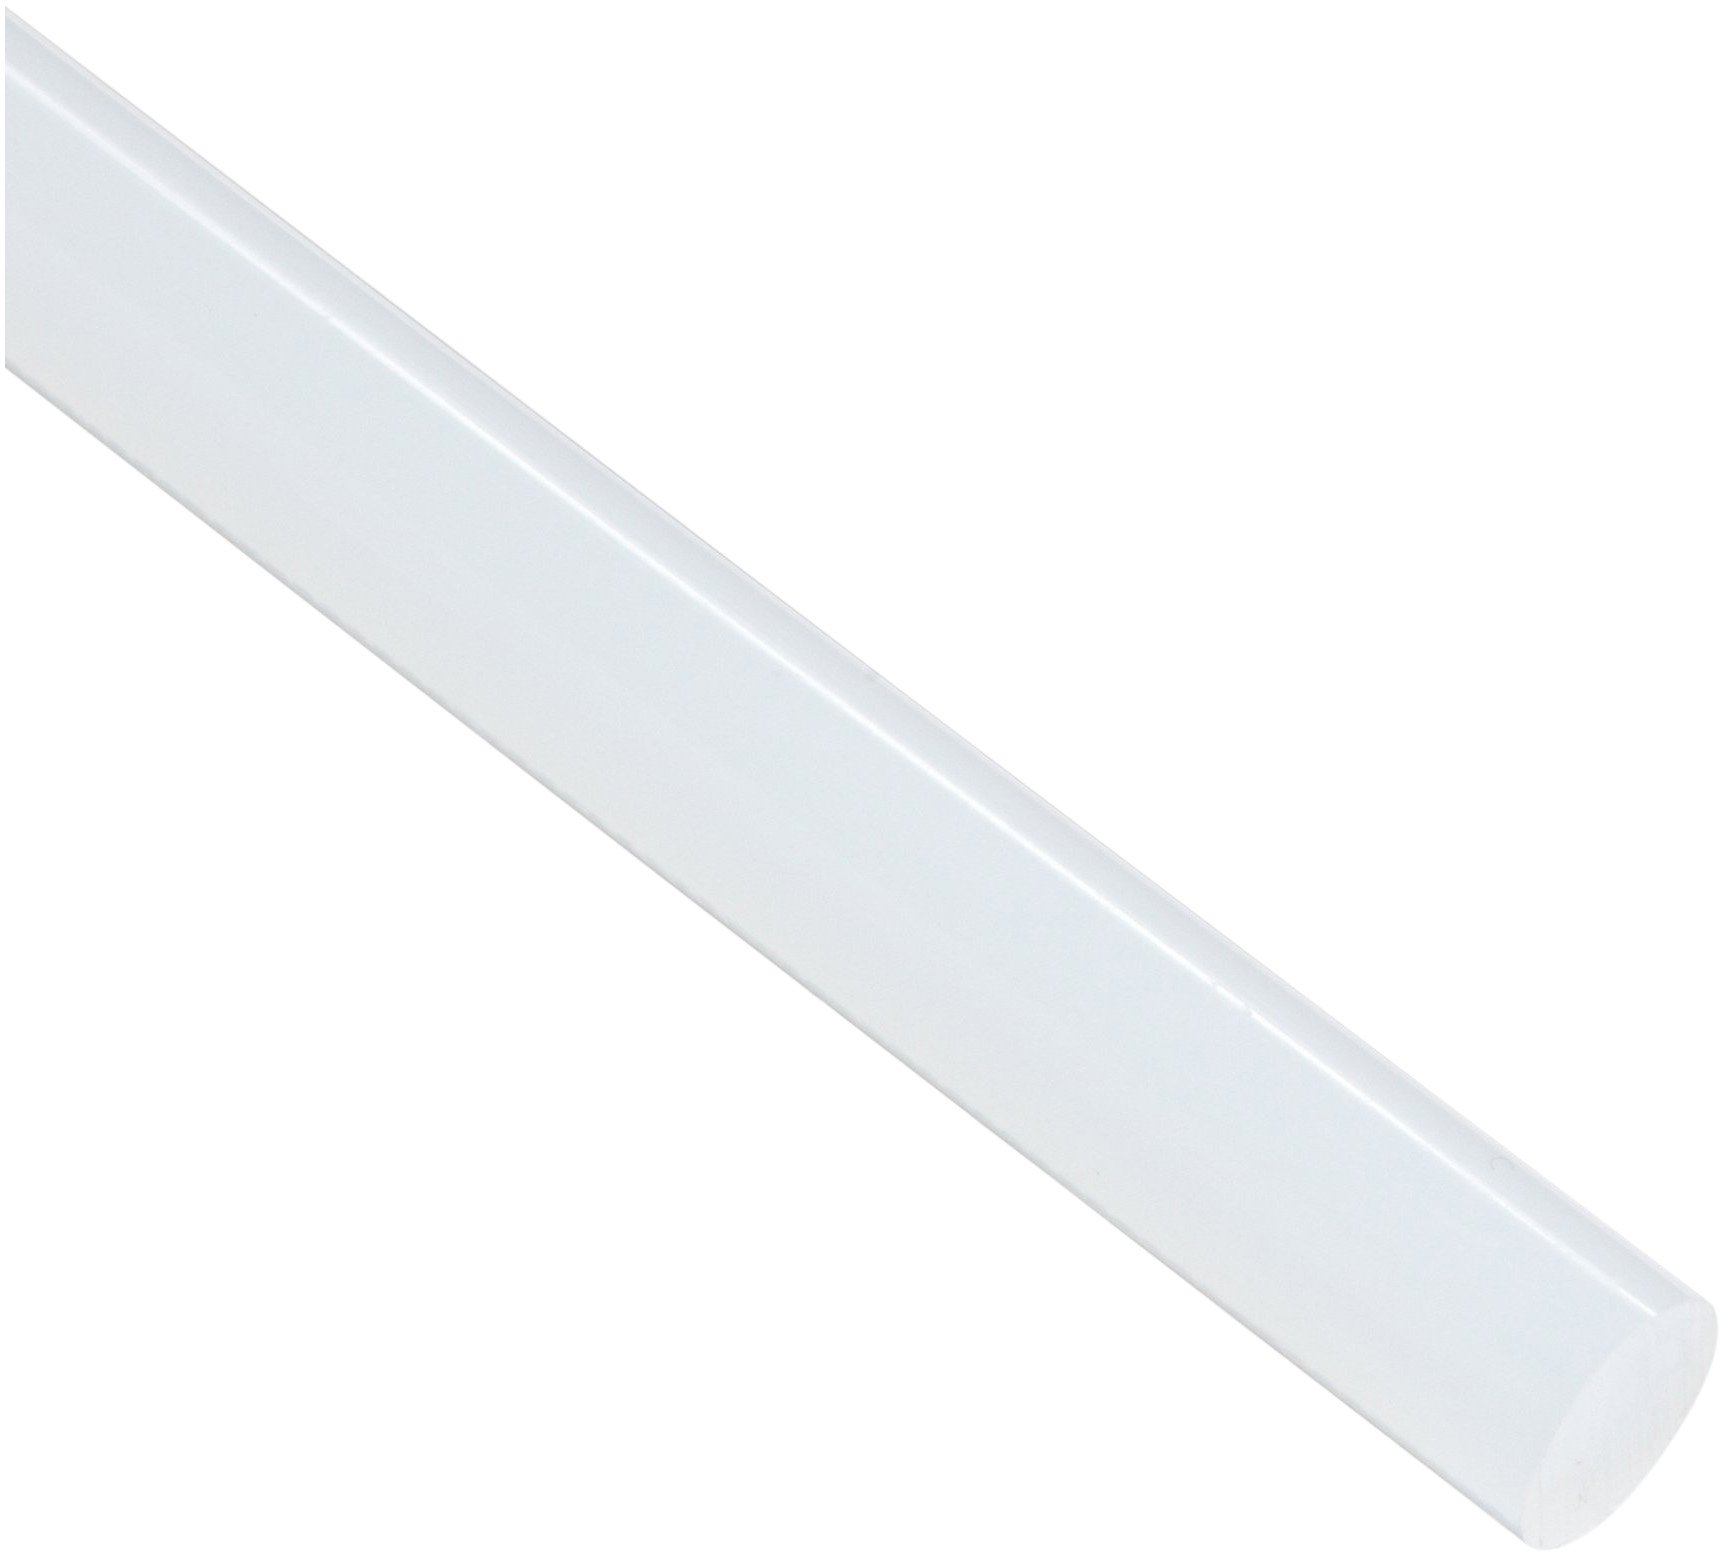 Steinel G200C Clear Glue Sticks, 1/2 x 10'' long sticks for most standard glue guns, bag with  40 Sticks, for bonding various materials, ideal adhesive for non visible application, 45801